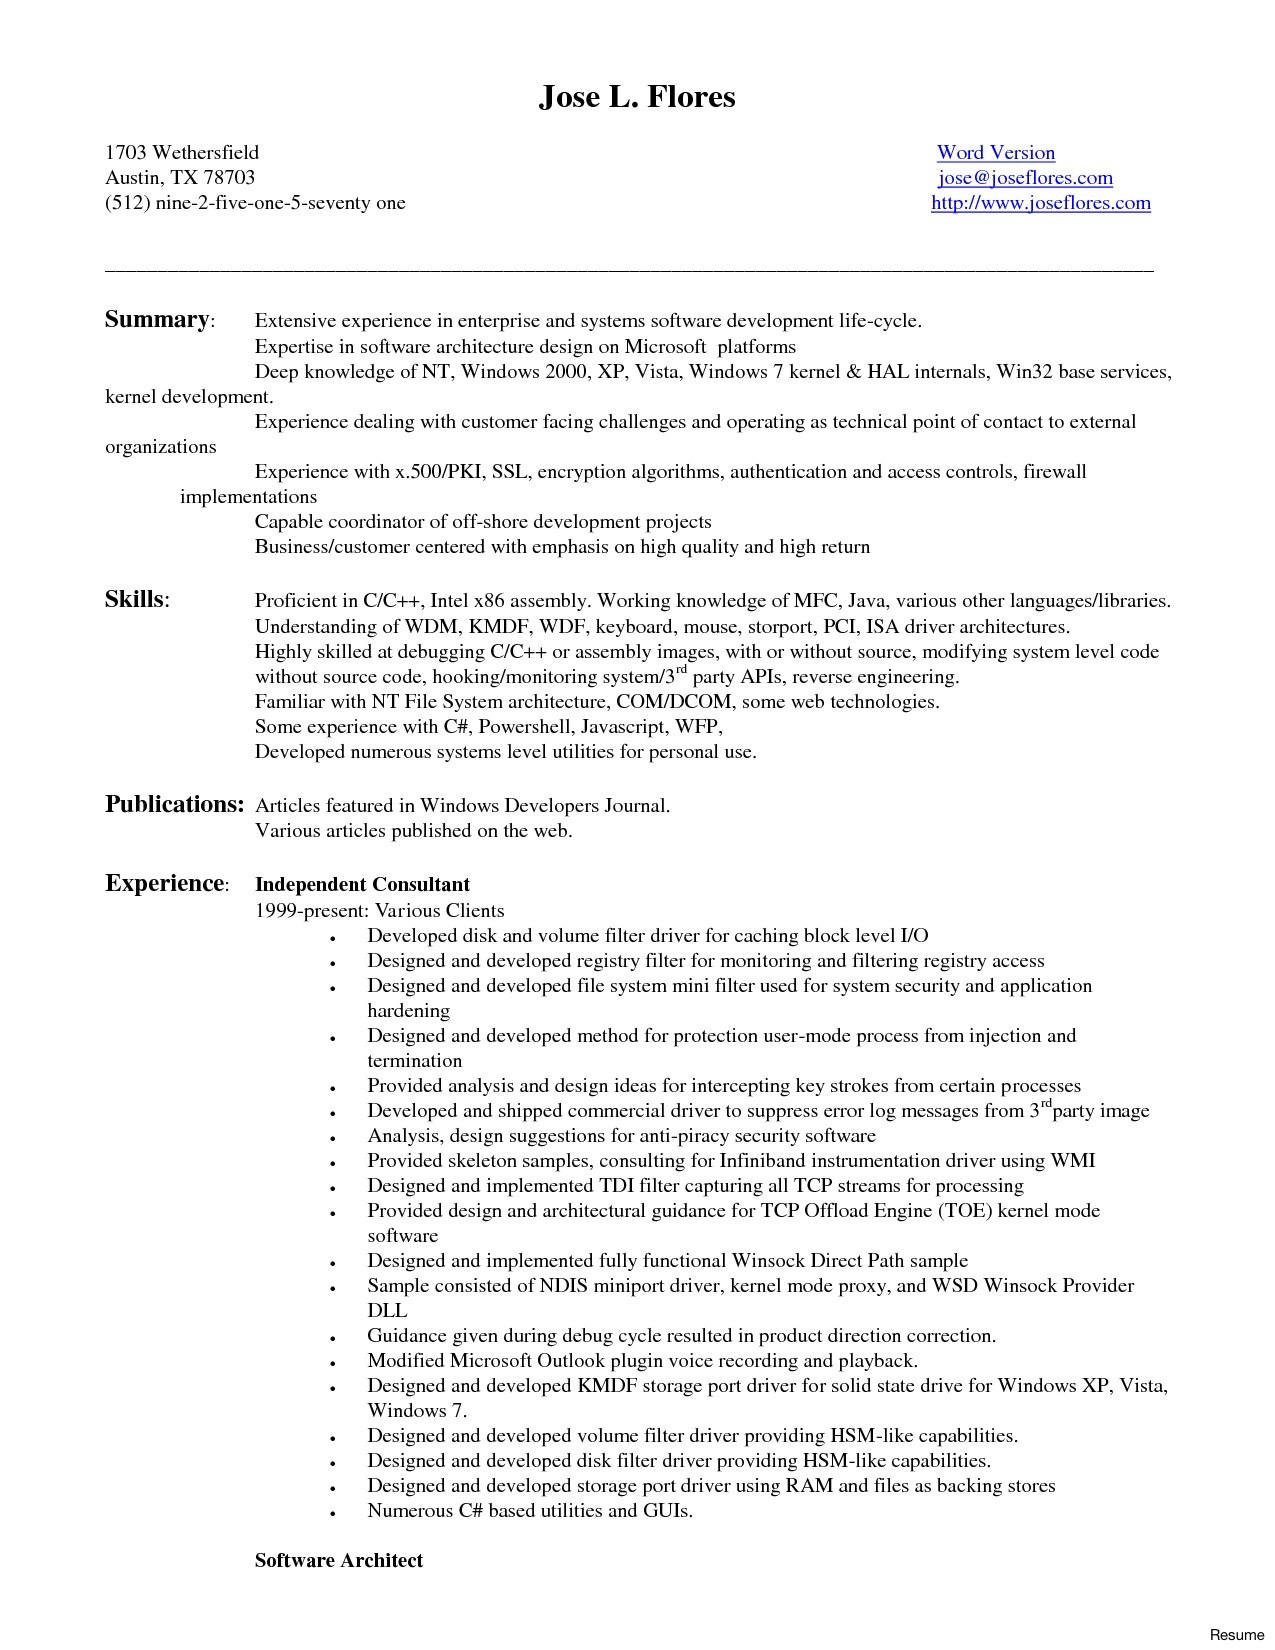 77 Beautiful Entry Level Software Engineer Resume with Images